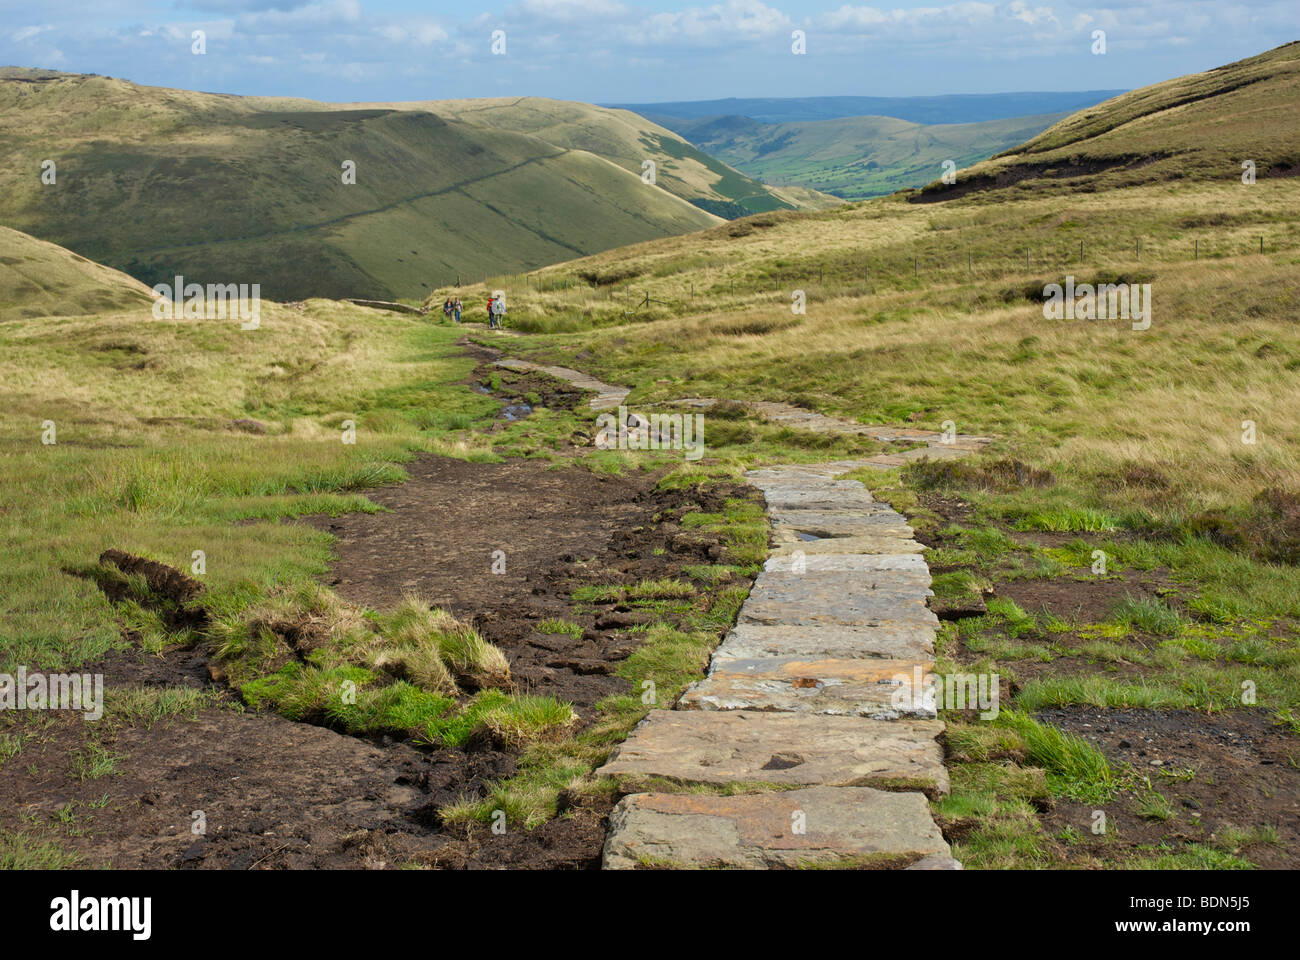 Repaired section of Pennine Way path on Kinder Scout, near Edale, Peak National Park, Derbyshire, UK - Stock Image